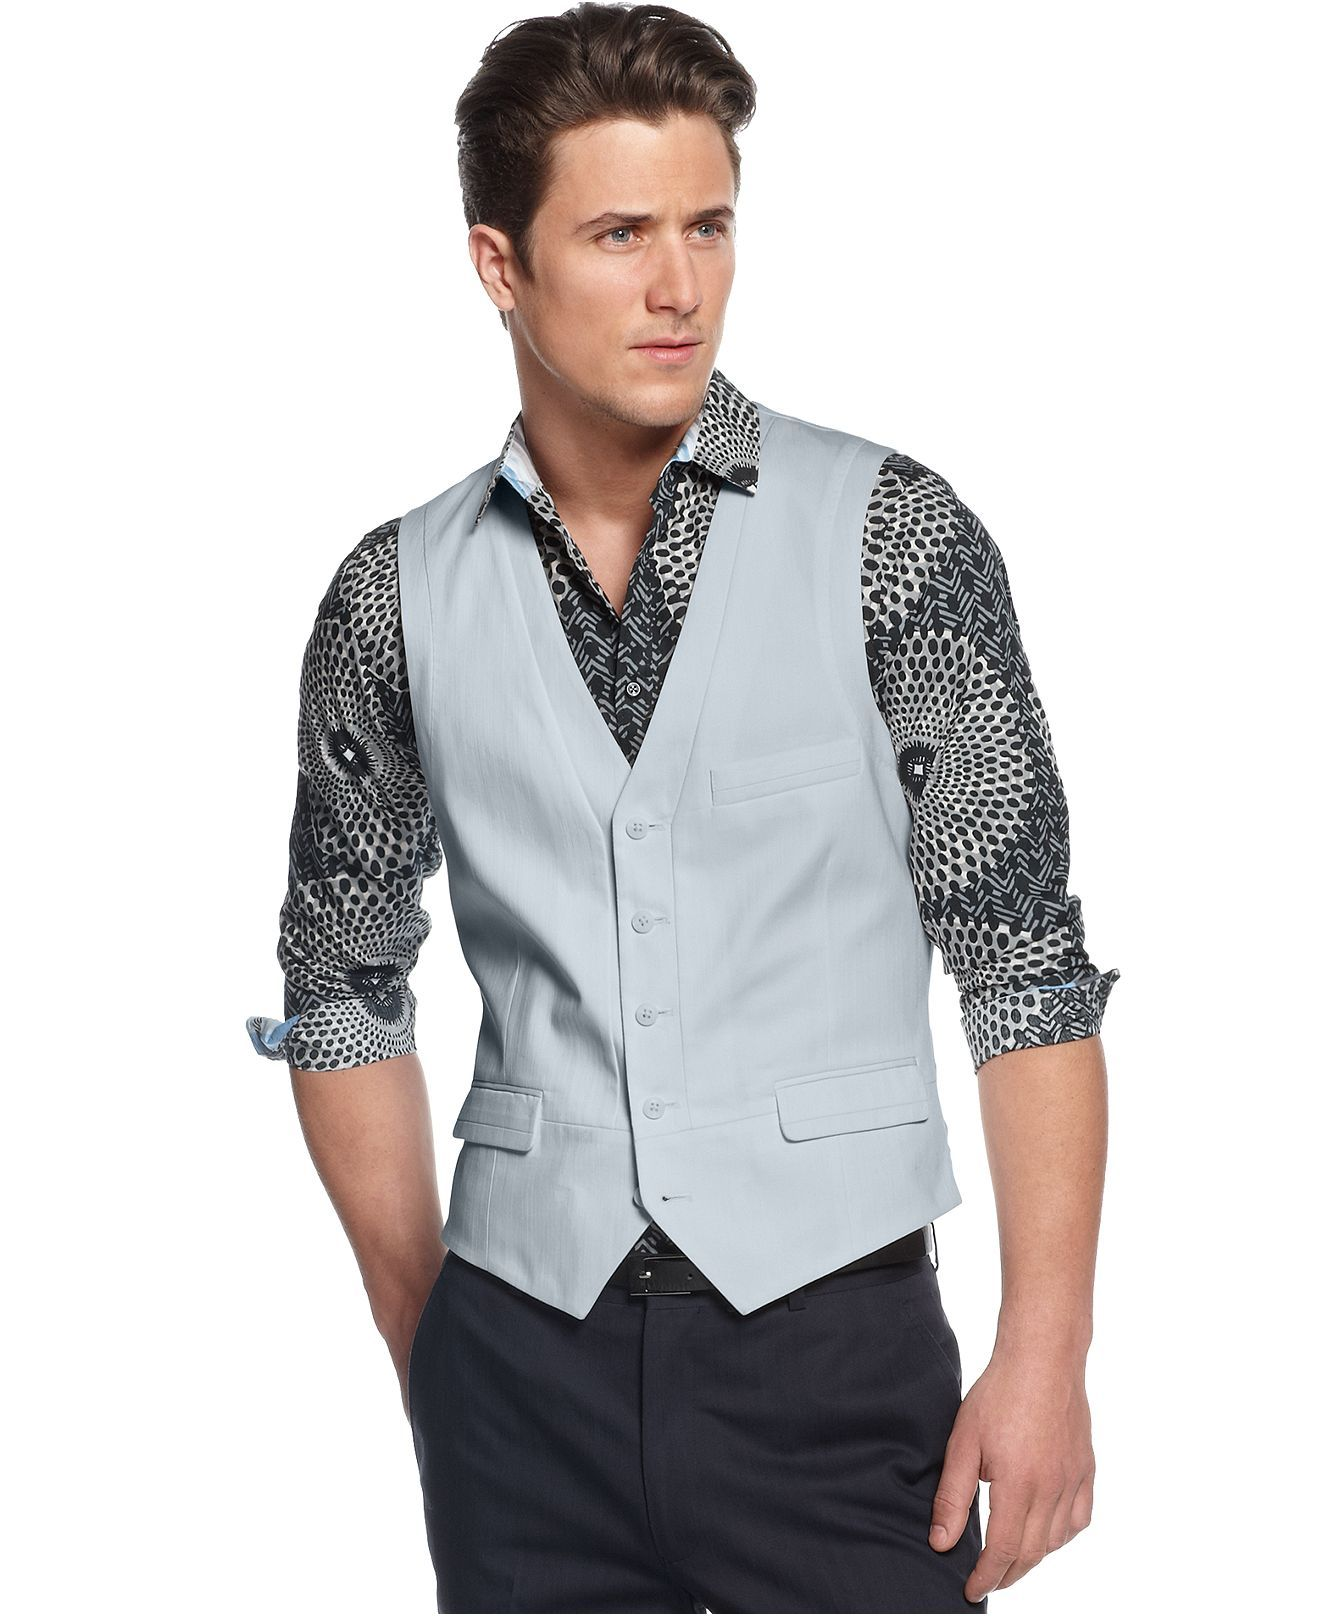 INC International Concepts Vest, Bennett Vest - Blazers & Sport Coats - Men - Macy's